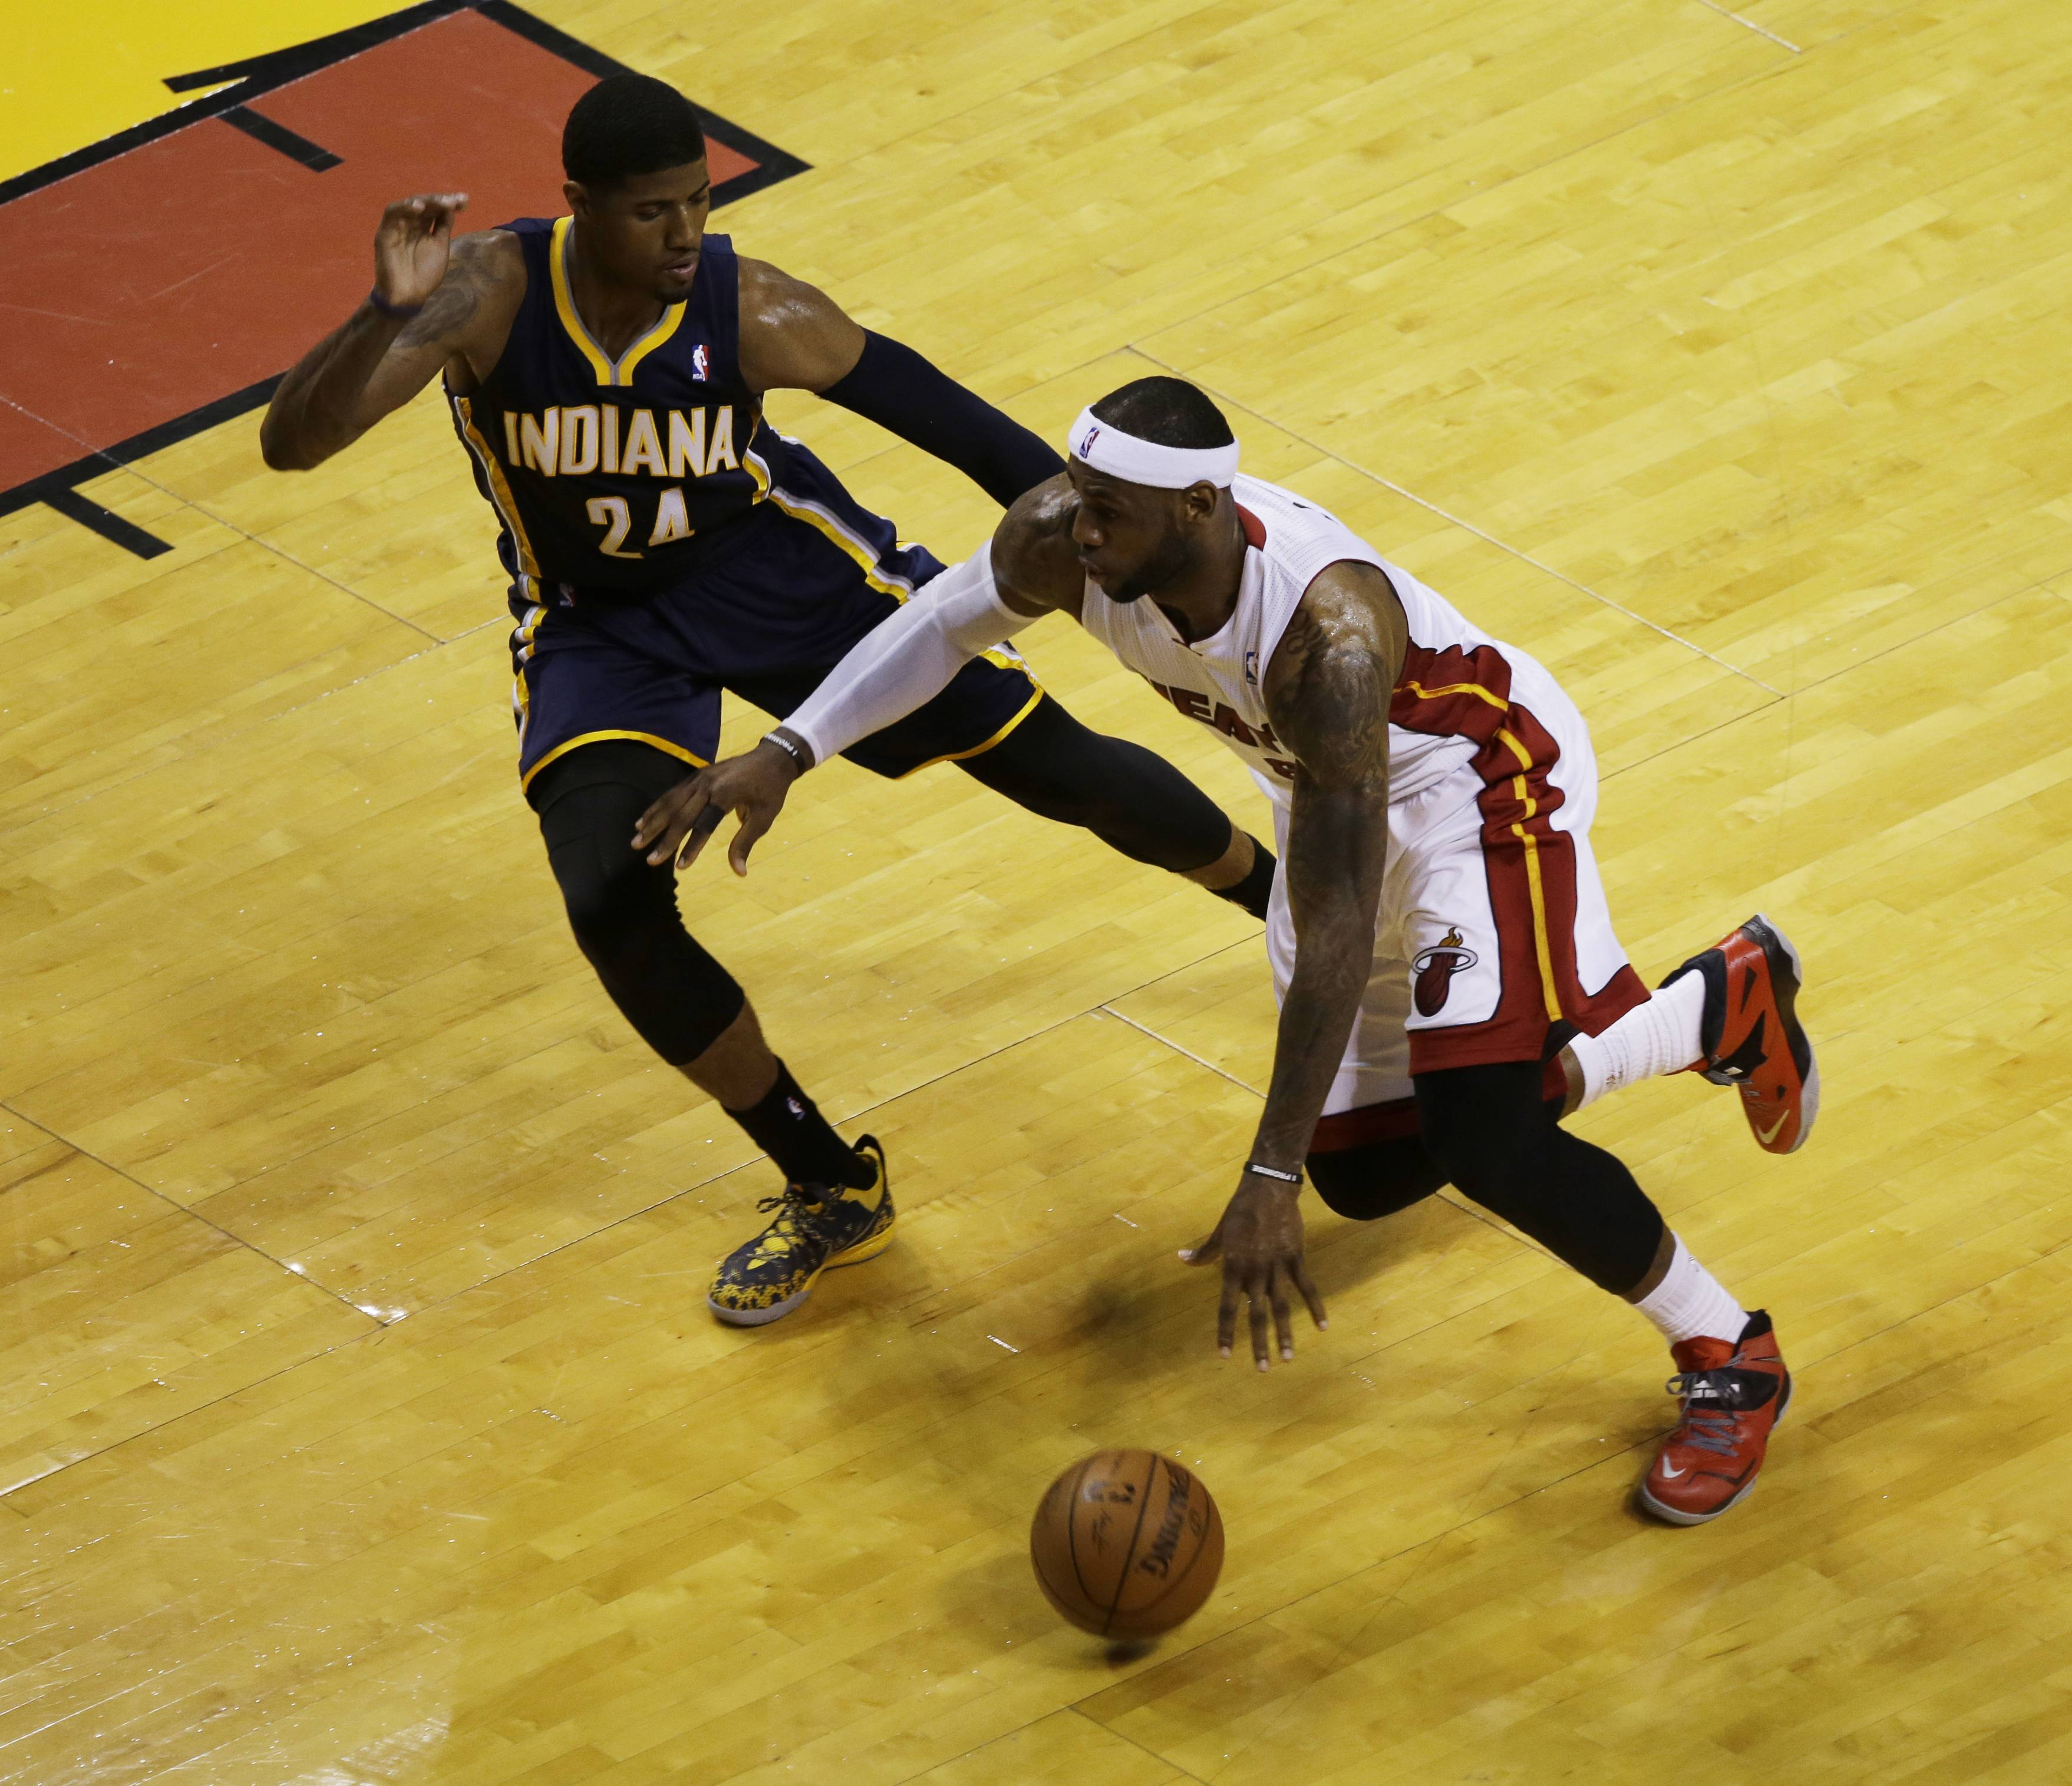 Miami Heat forward LeBron James (6) dribbles pass Indiana Pacers forward Paul George (24) during Game 4 in the NBA basketball Eastern Conference finals playoff series, Monday, May 26, 2014, in Miami. The Heat won 102-90.